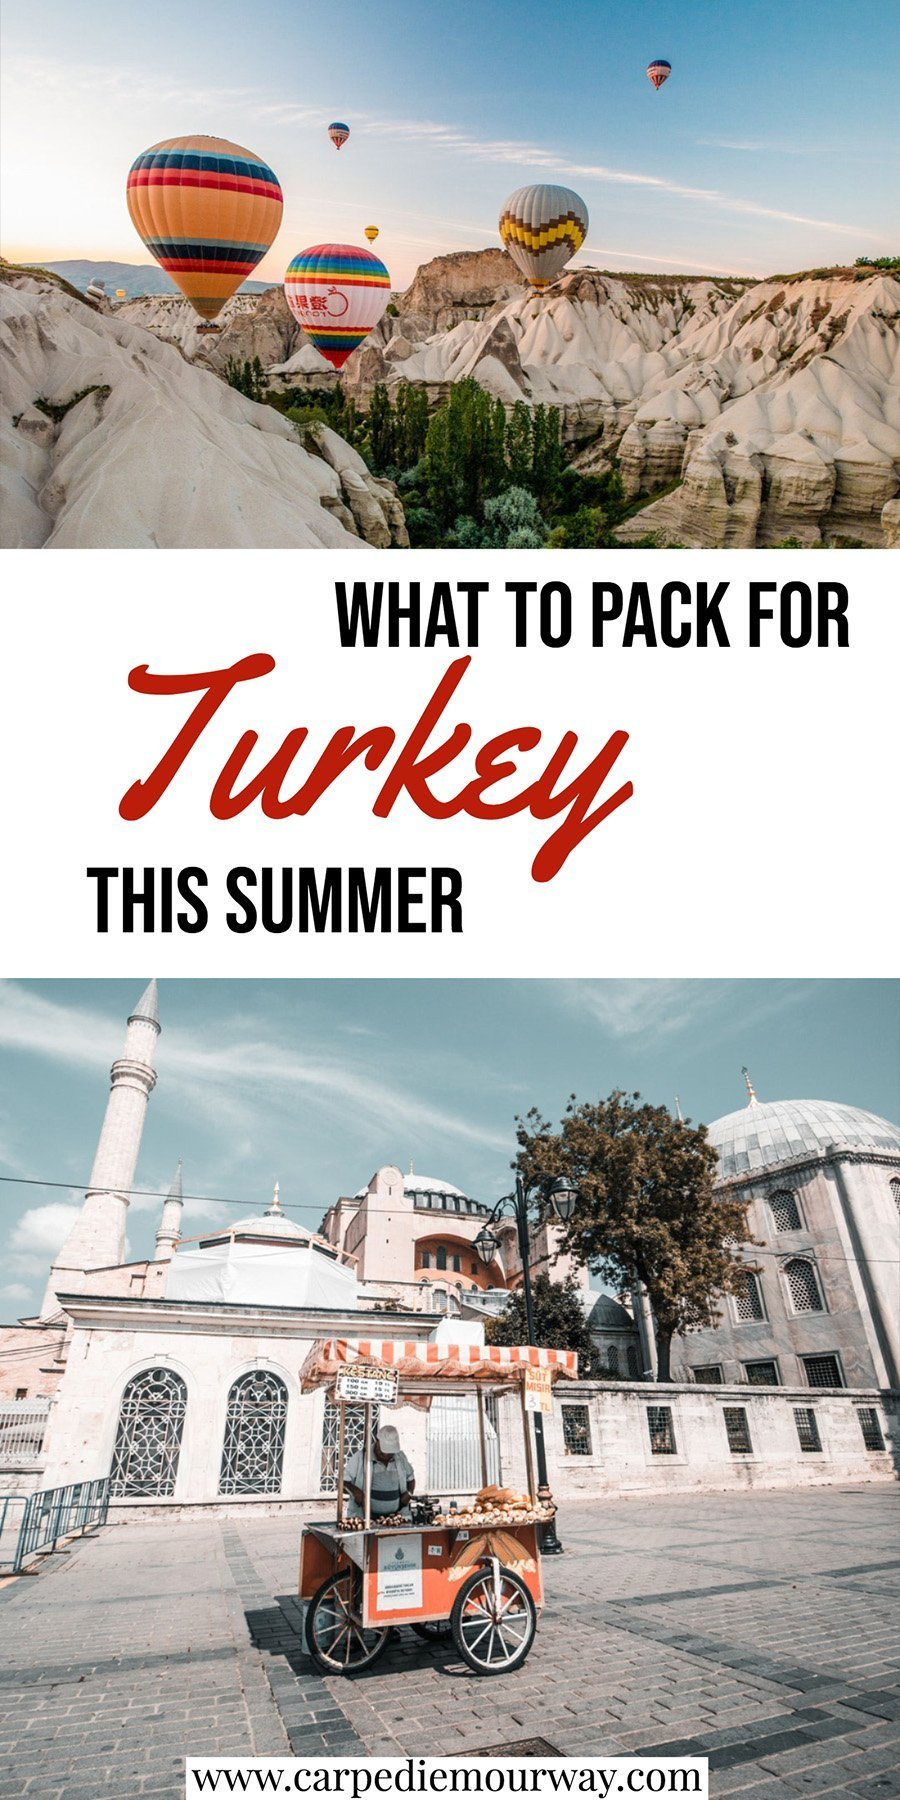 Turkey Packing List for Summer June, July, August, September